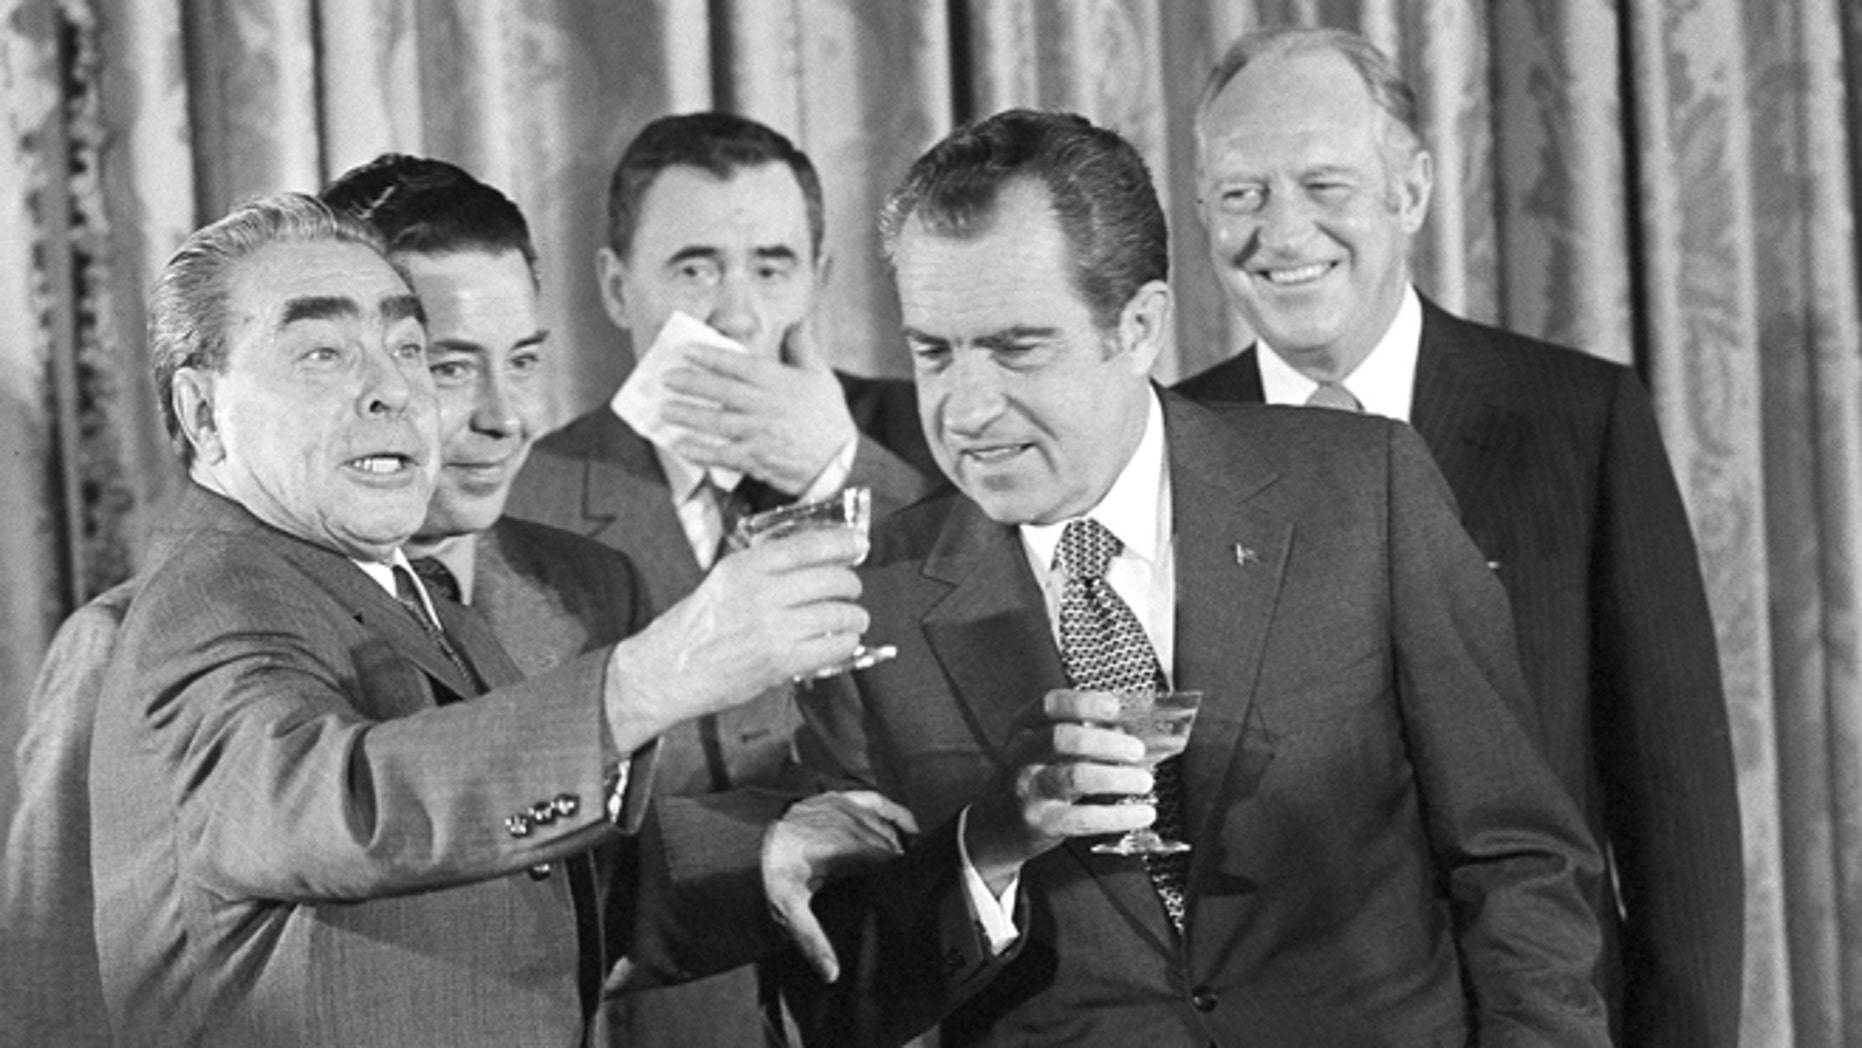 In this June 19, 1973 file photo, Soviet party chief Leonid I. Brezhnev, left, proposes a toast at the State Department in Washington after signing of the U.S.-Soviet cooperative agreements. Others from left, interpreter Viktor Sukhodrev, Russian Foreign Minister Andrei Gromyko, President Nixon and Secretary of State William F. Rogers. Viktor Sukhodrev, the Soviet interpreter who for three decades brought the words of Kremlin leaders to the English-speaking world died in Moscow on Friday May 16, 2014 at the age of 81.